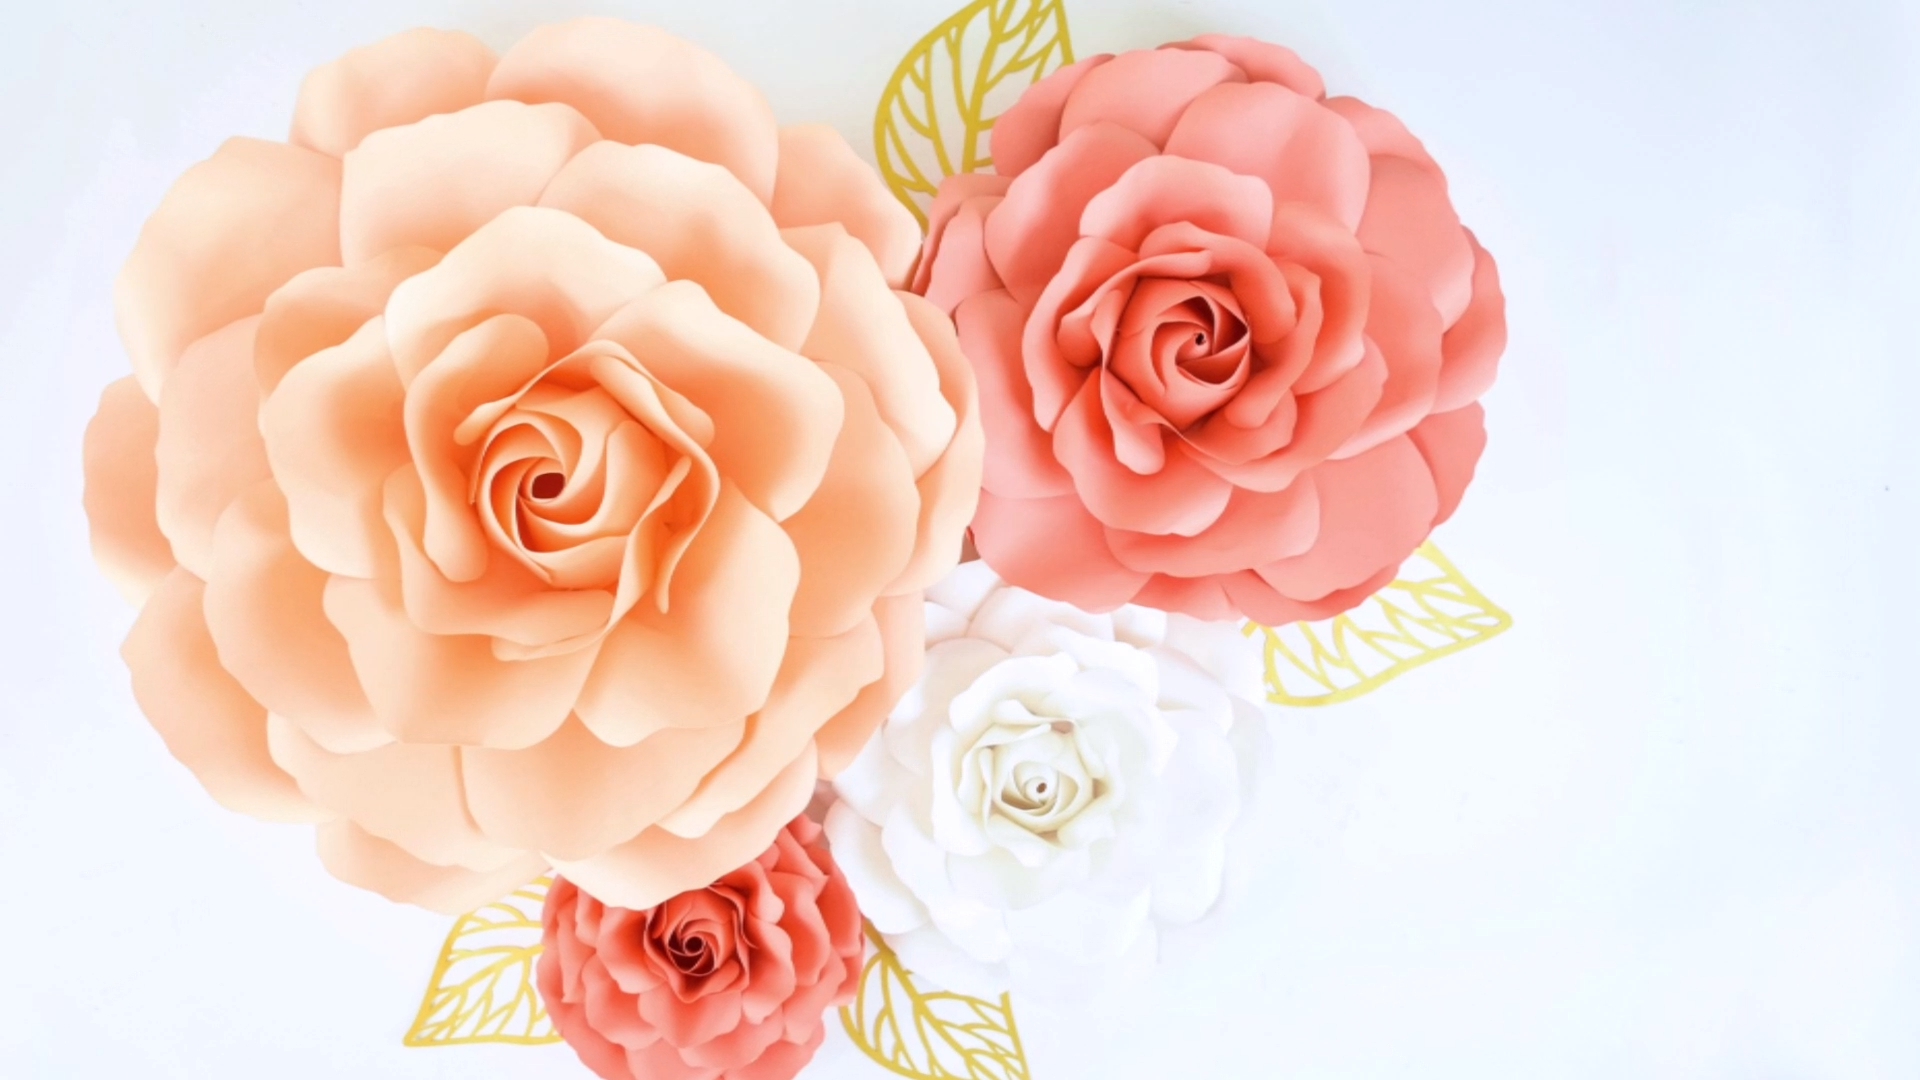 DIY Giant Paper Roses #bigpaperflowers